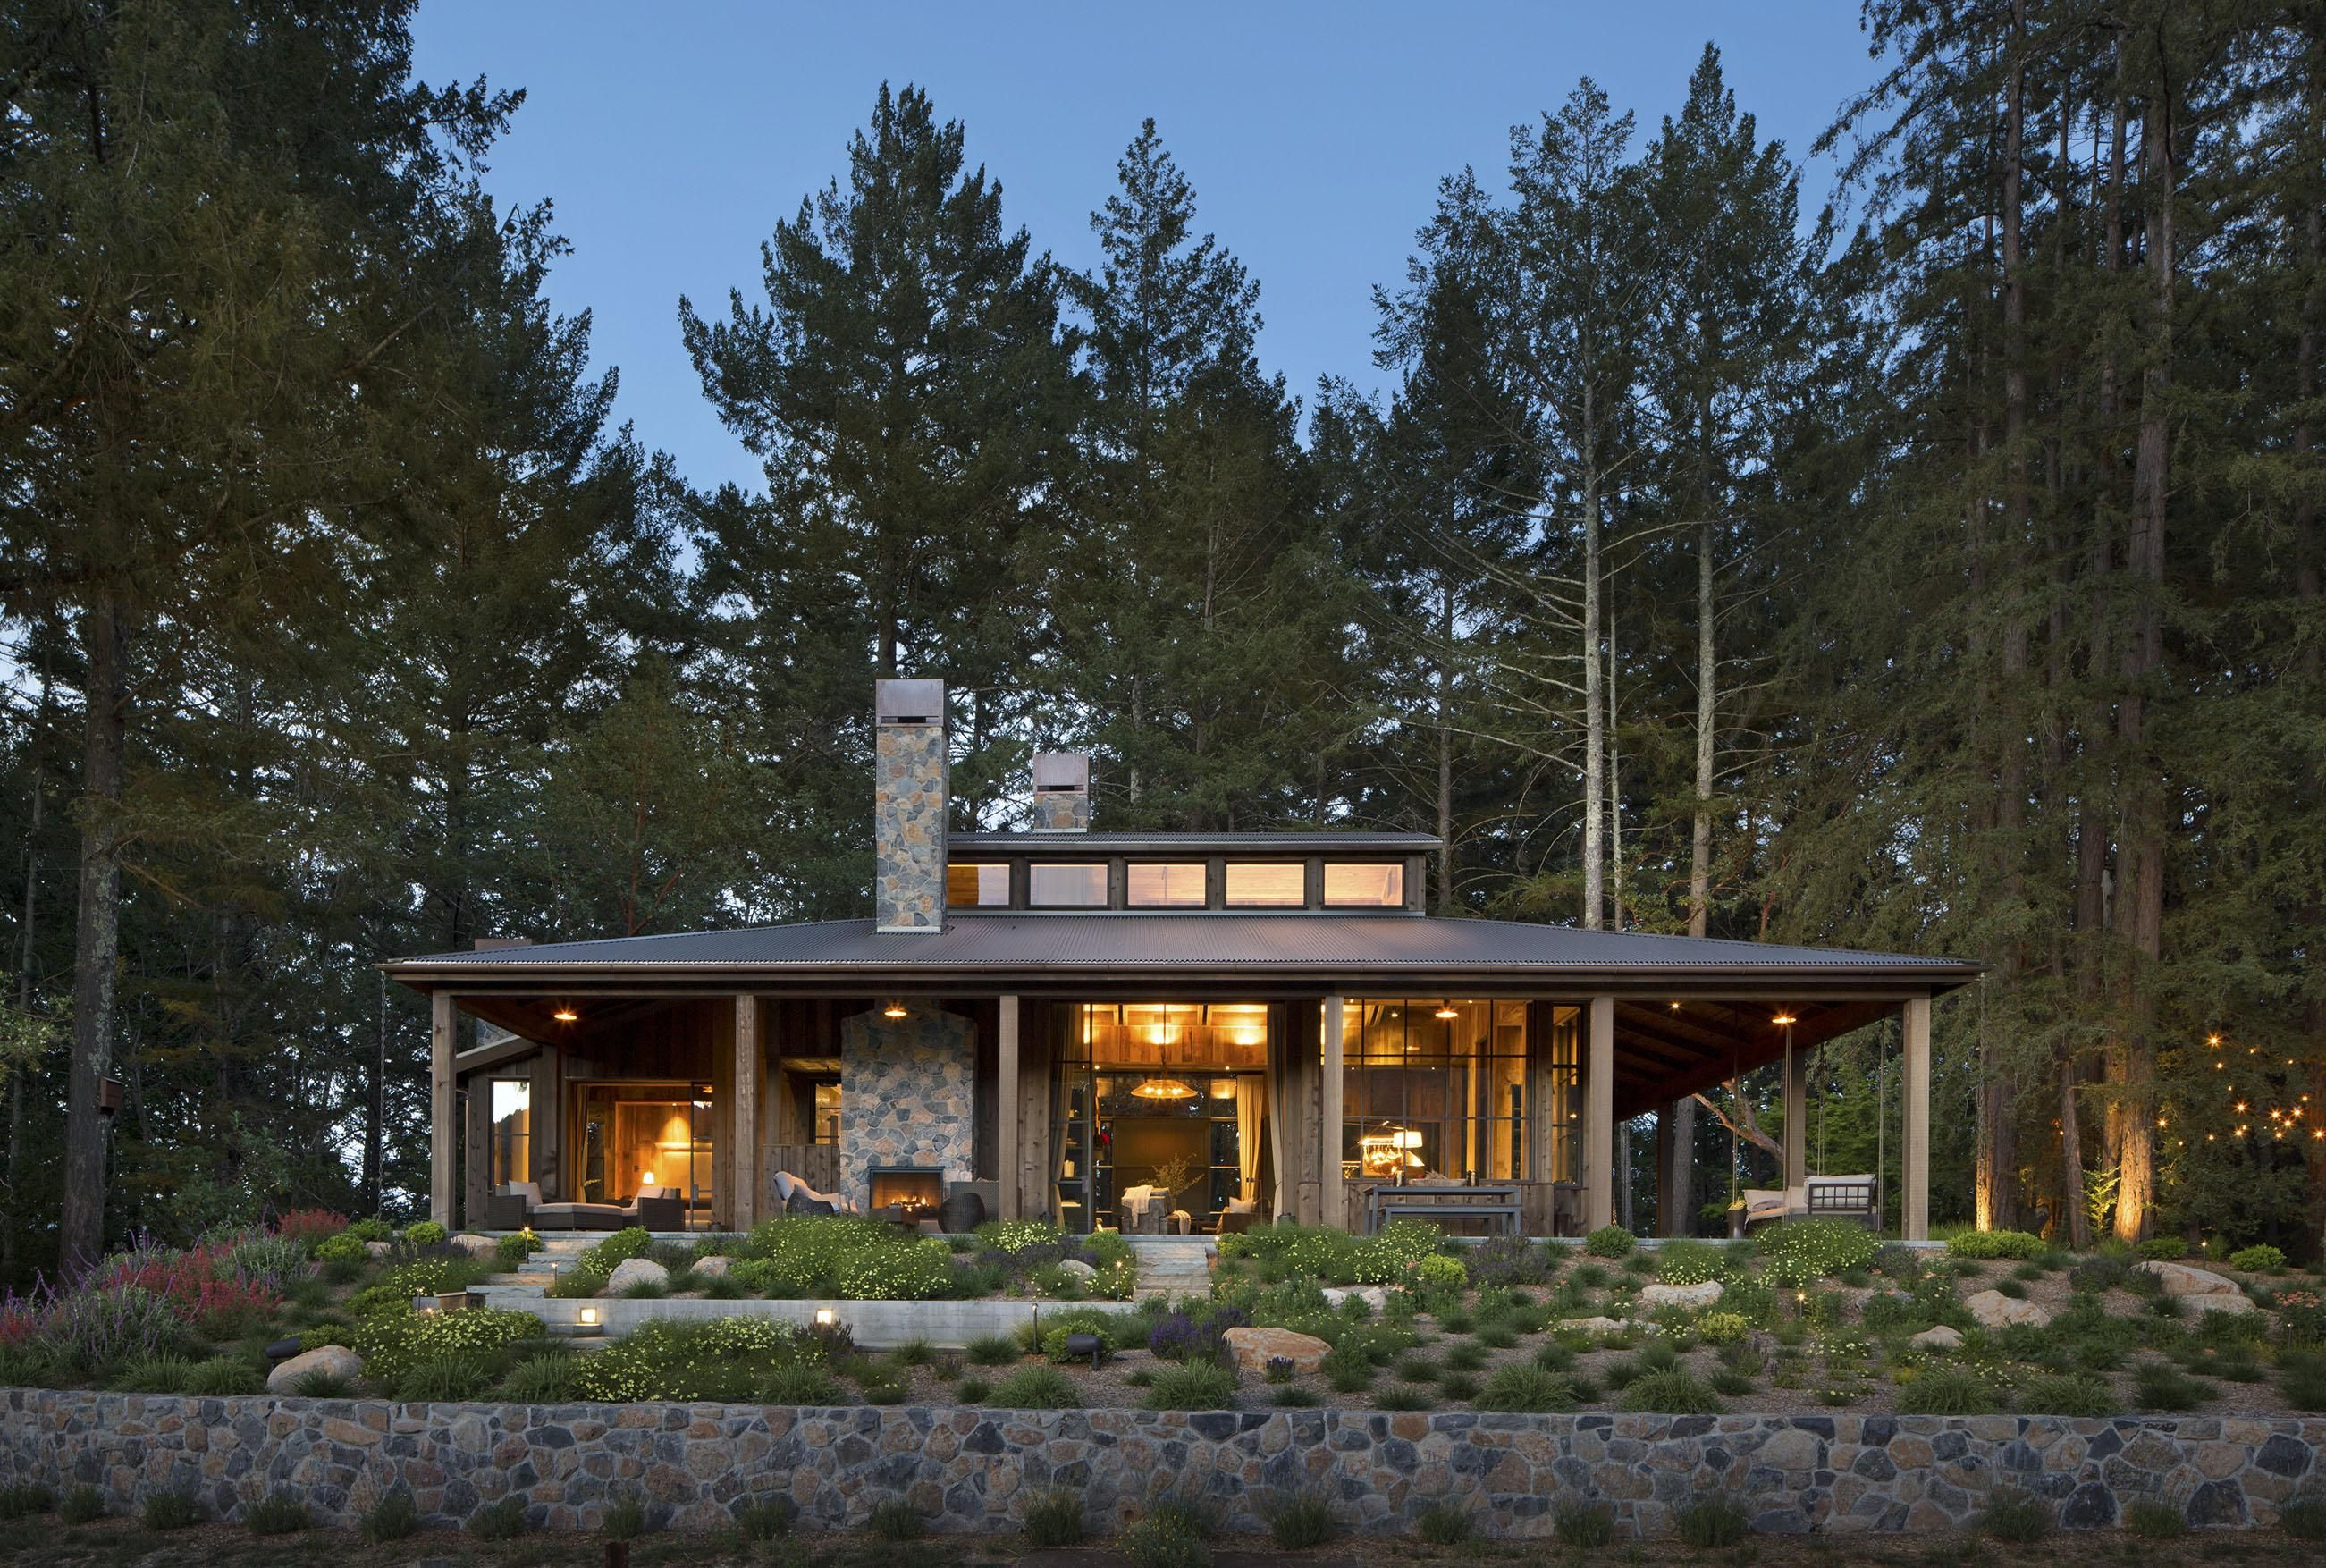 House Tour: A Modern Cabin in St. Helena | Pinterest | Saint helena ...